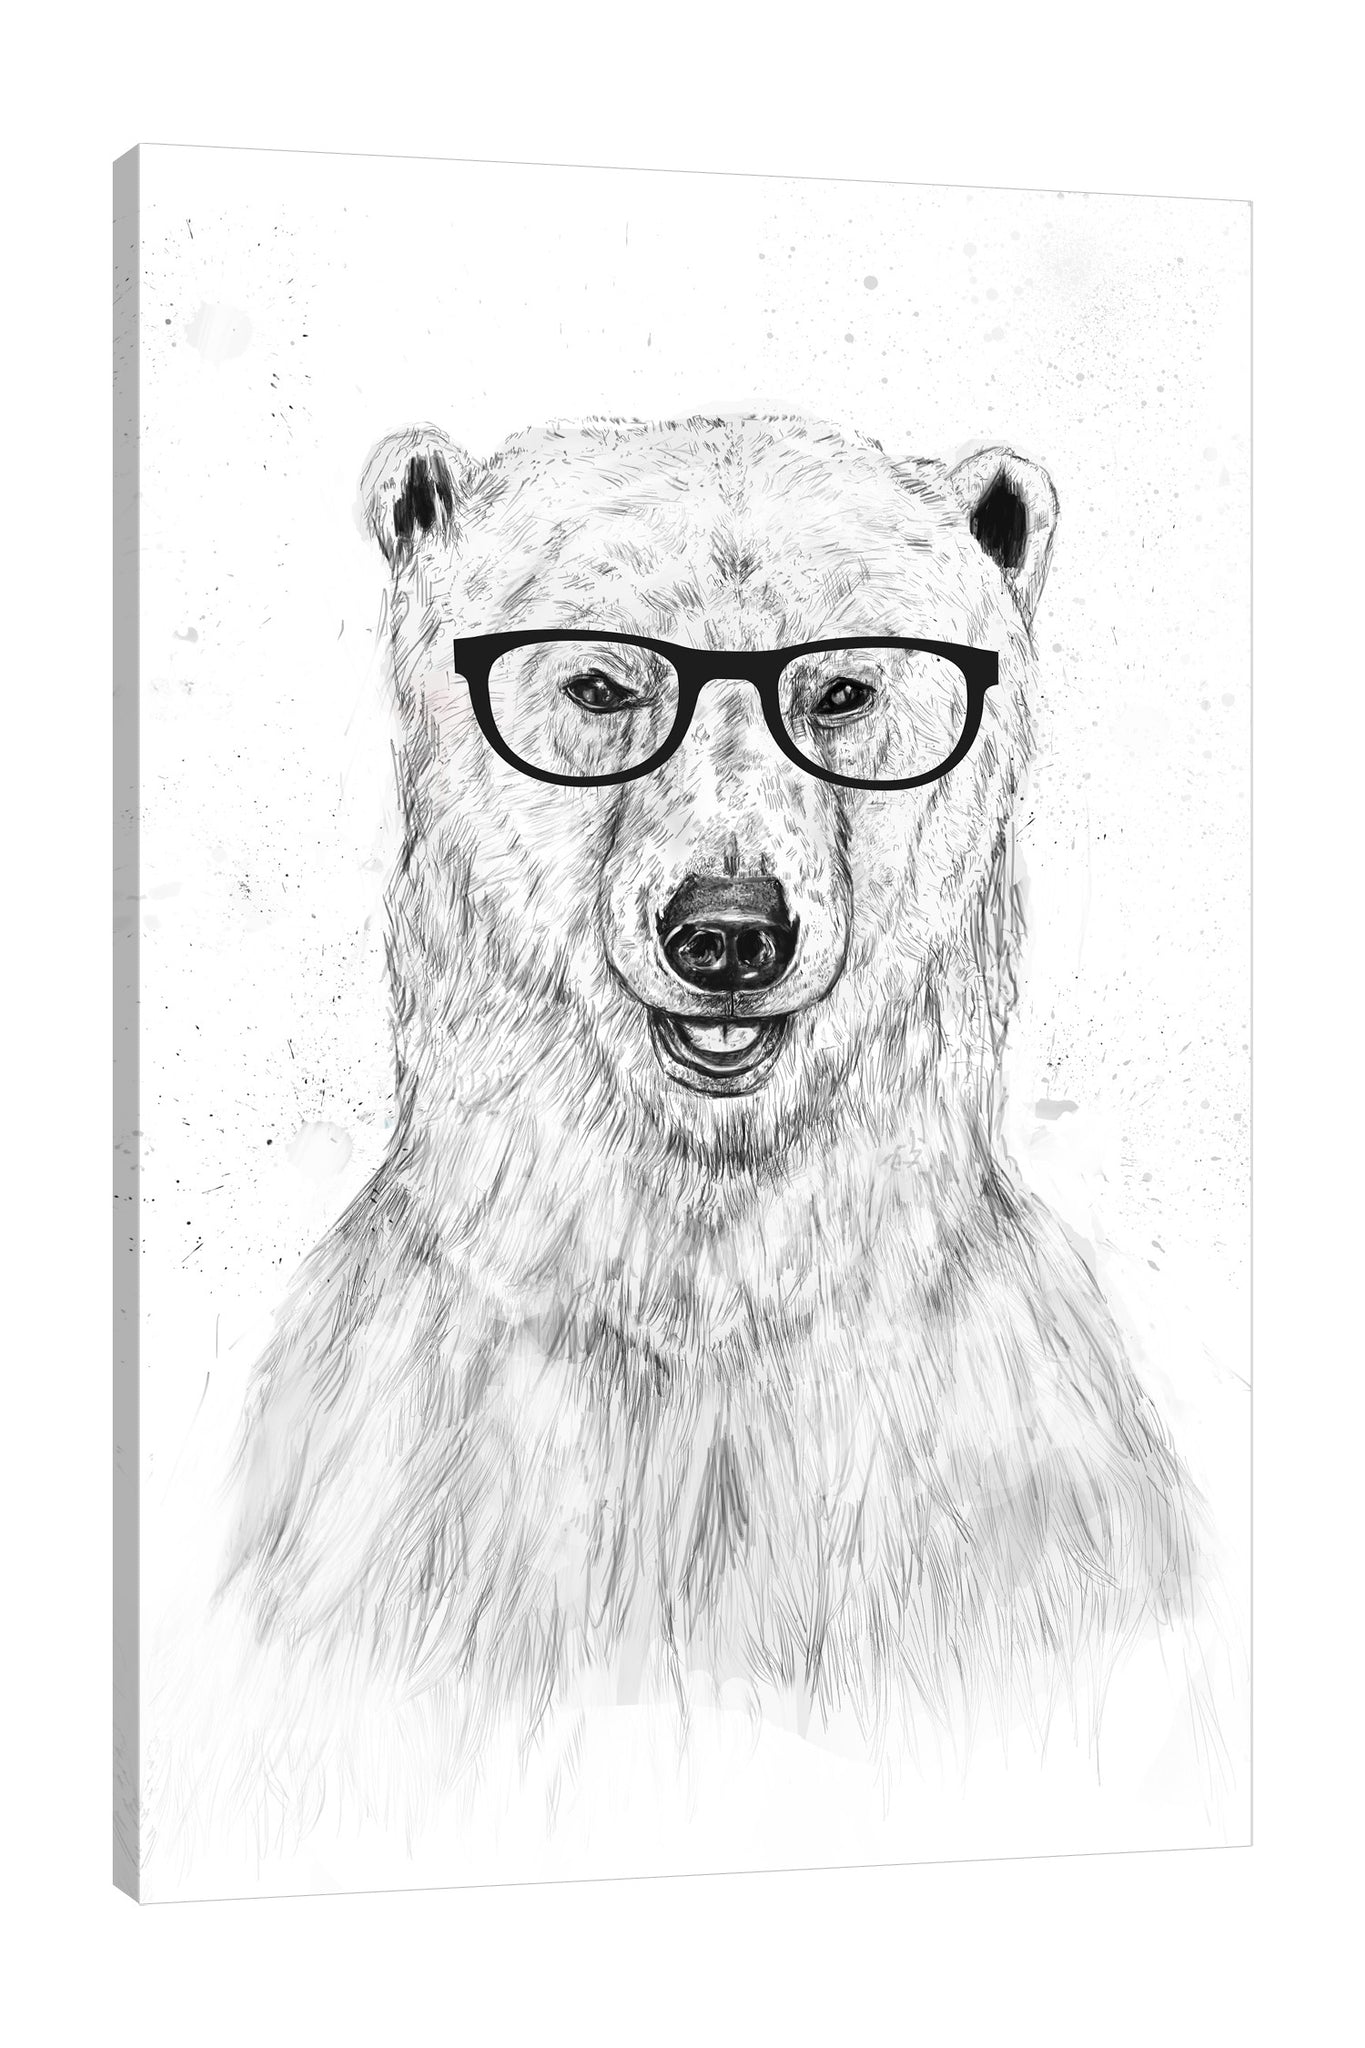 Balazs-Solti,Modern & Contemporary,Animals,Entertainment,animals,animal,eyeglass,eyeglasses,stroke,strokes,bears,bear,Purple,Mist Gray,Charcoal Gray,Gray,Coral Pink,White